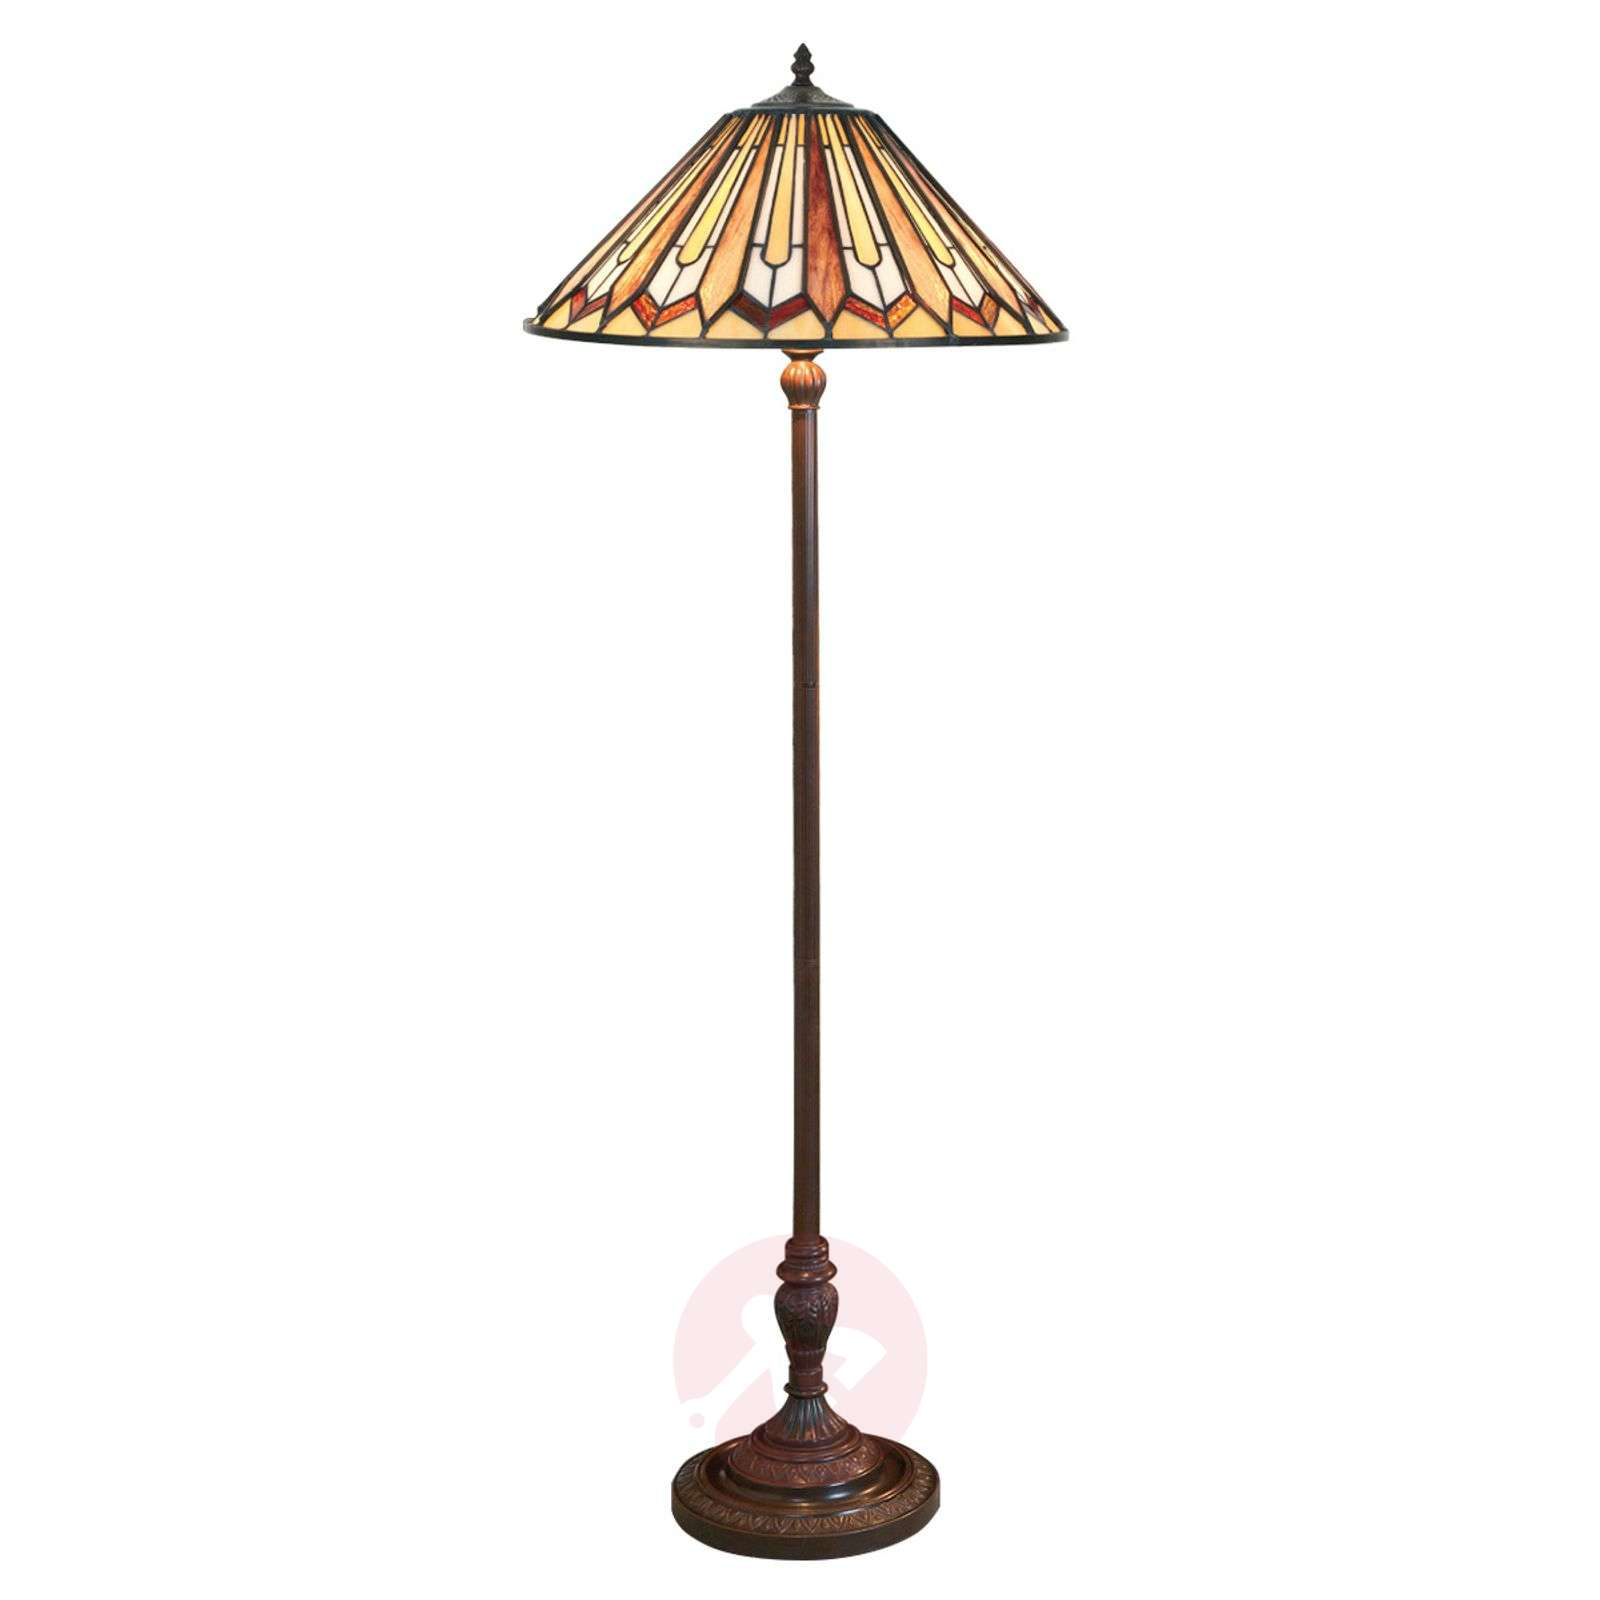 Imposing floor lamp Farina-1032332-01